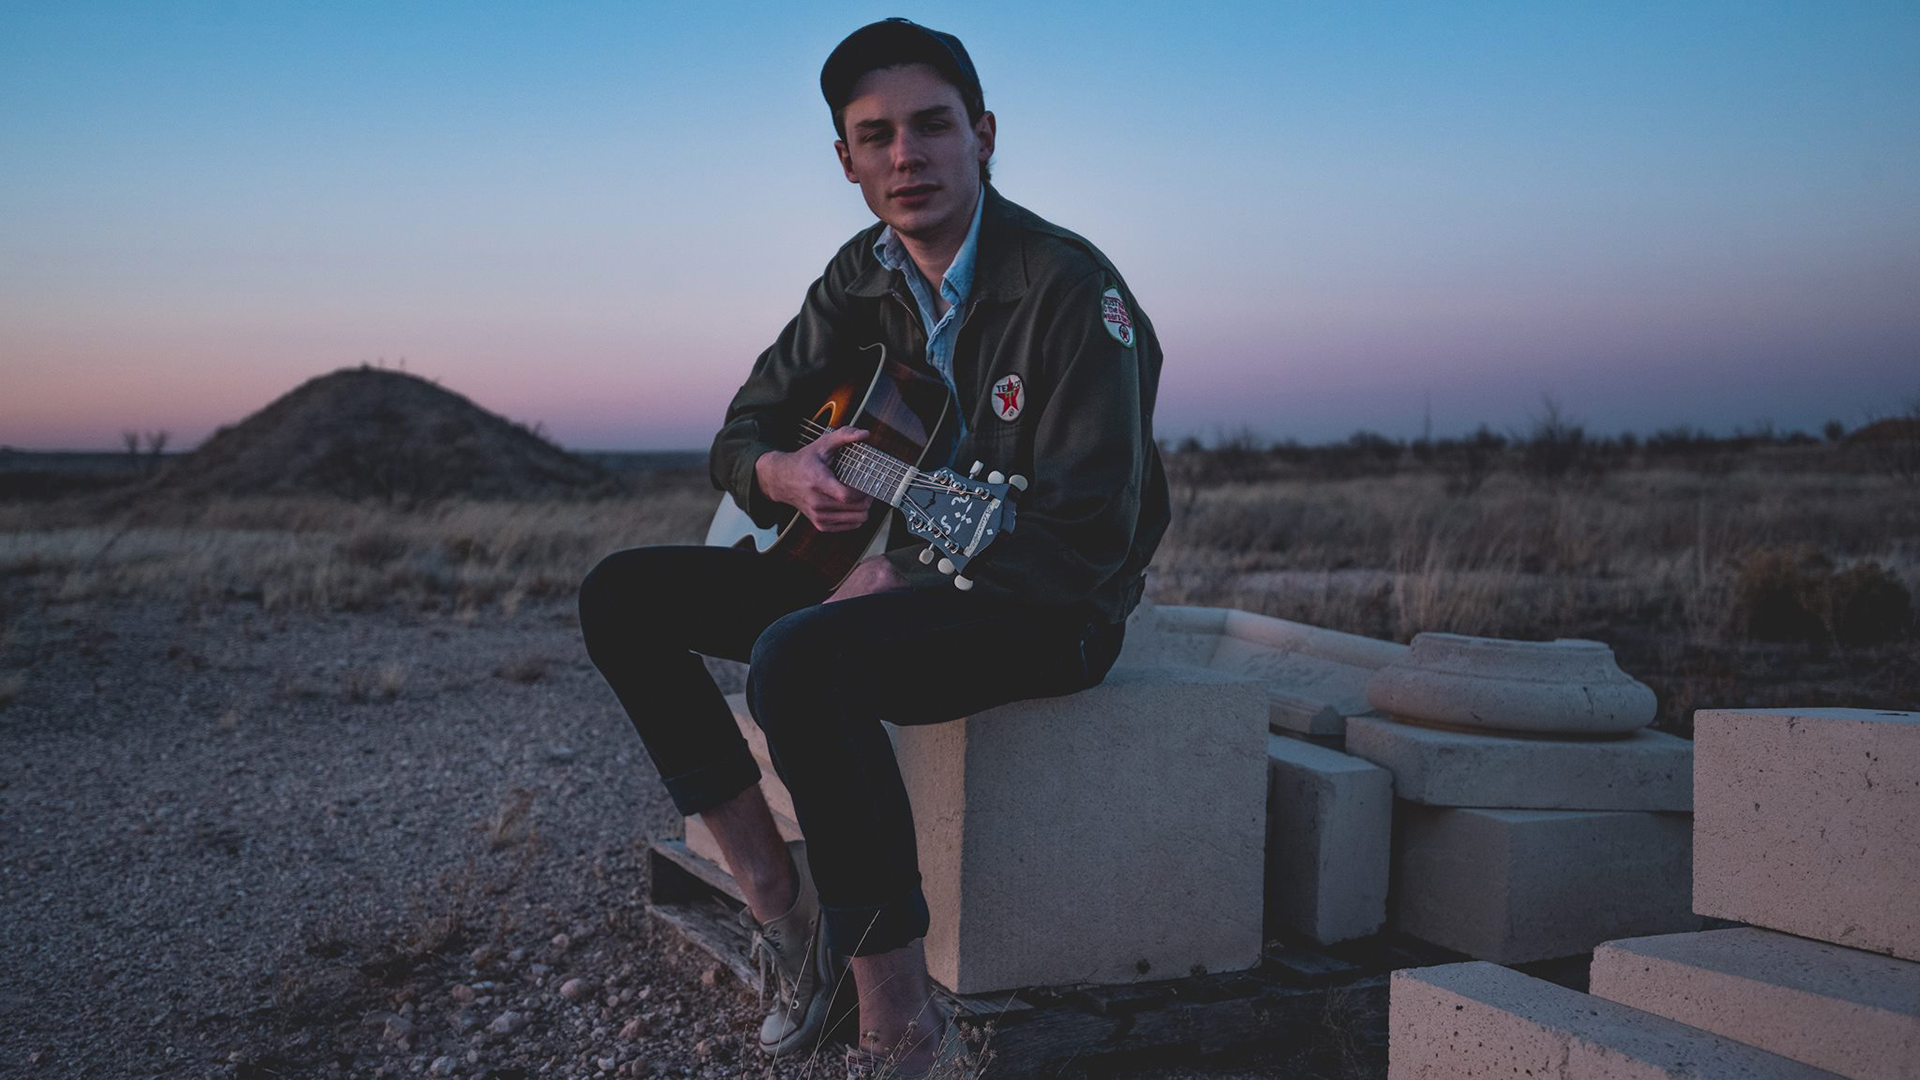 Young but acclaimed musician Hayden Pedigo composes ode to Amarillo's 'hard-earned beauty'